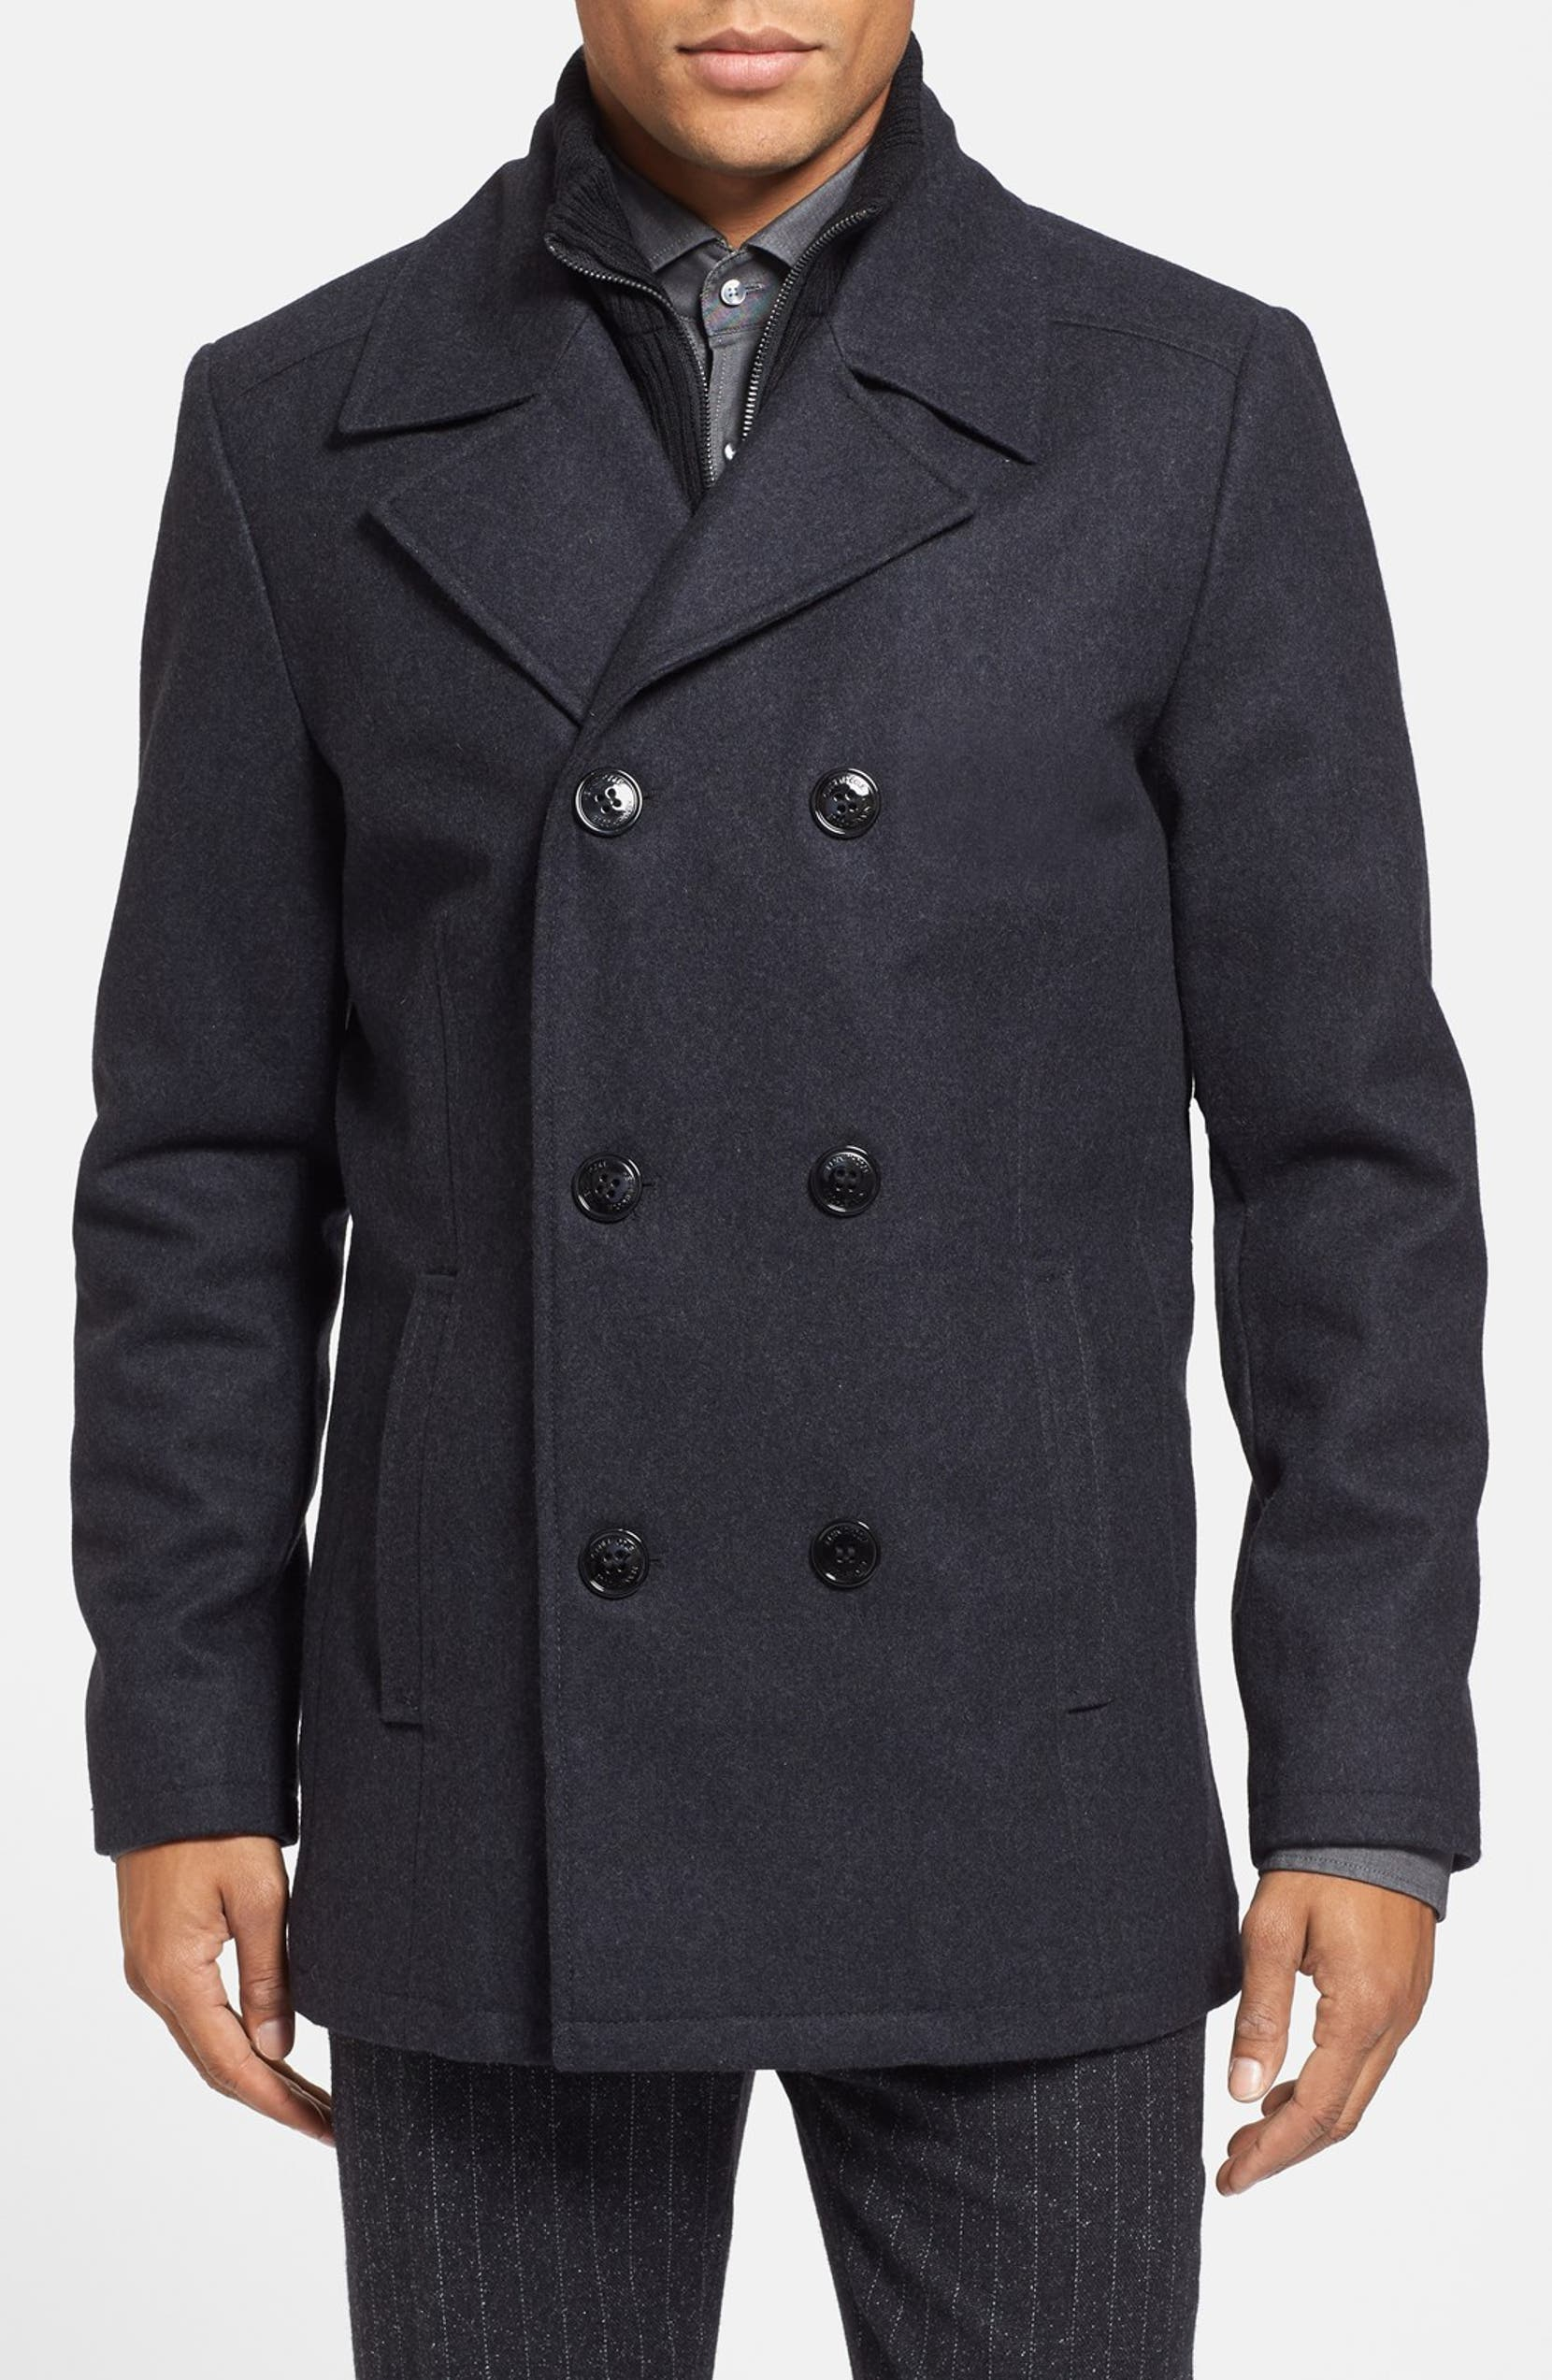 46a172db9cc Kenneth Cole Reaction Regular Fit Double Breasted Wool Blend Peacoat with  Knit Bib